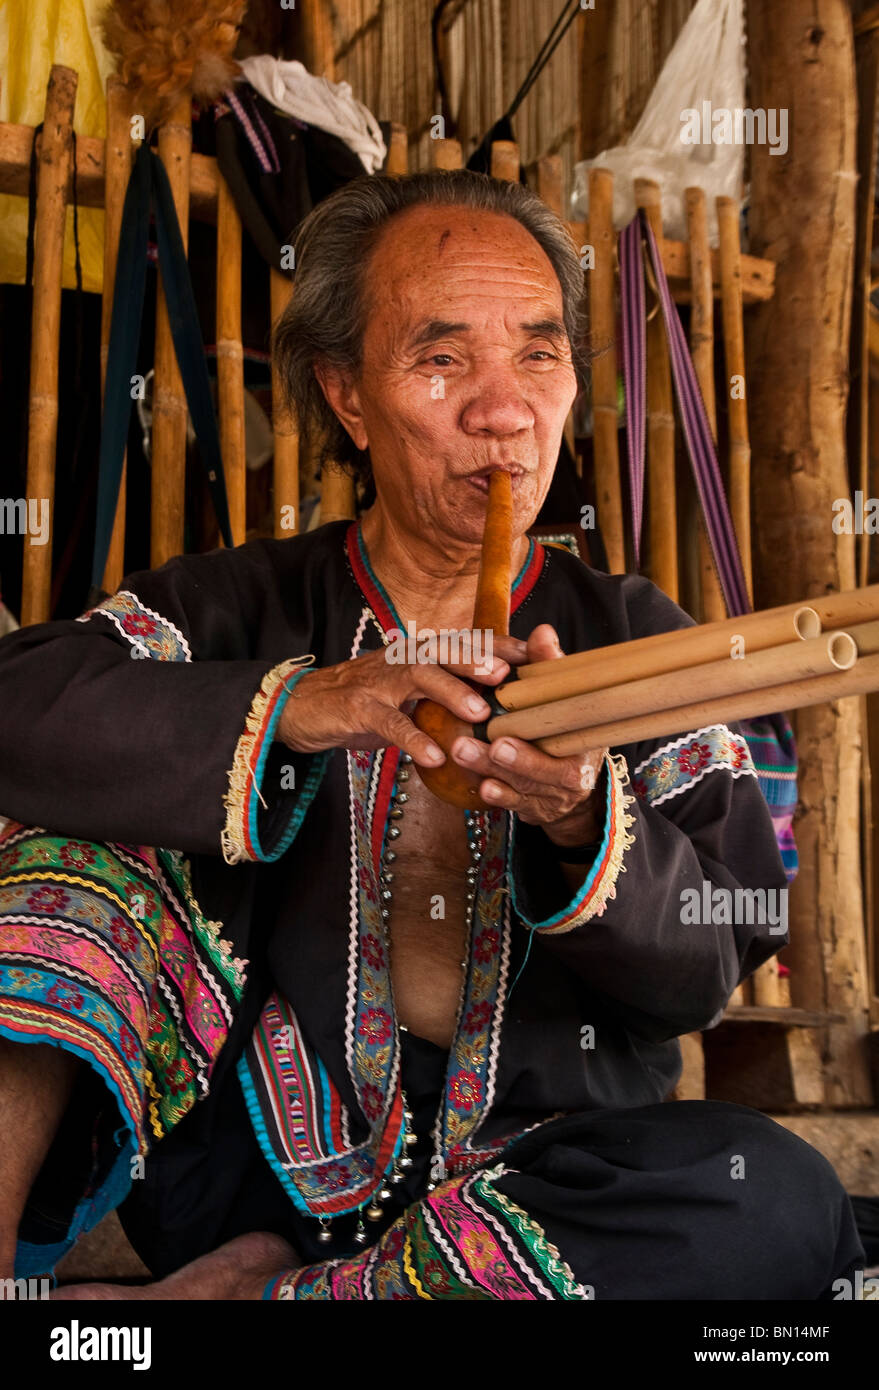 Man playing a type of flute at Baan Tong Luang, village of Hmong people in rural Chiang Mai province, Thailand. - Stock Image